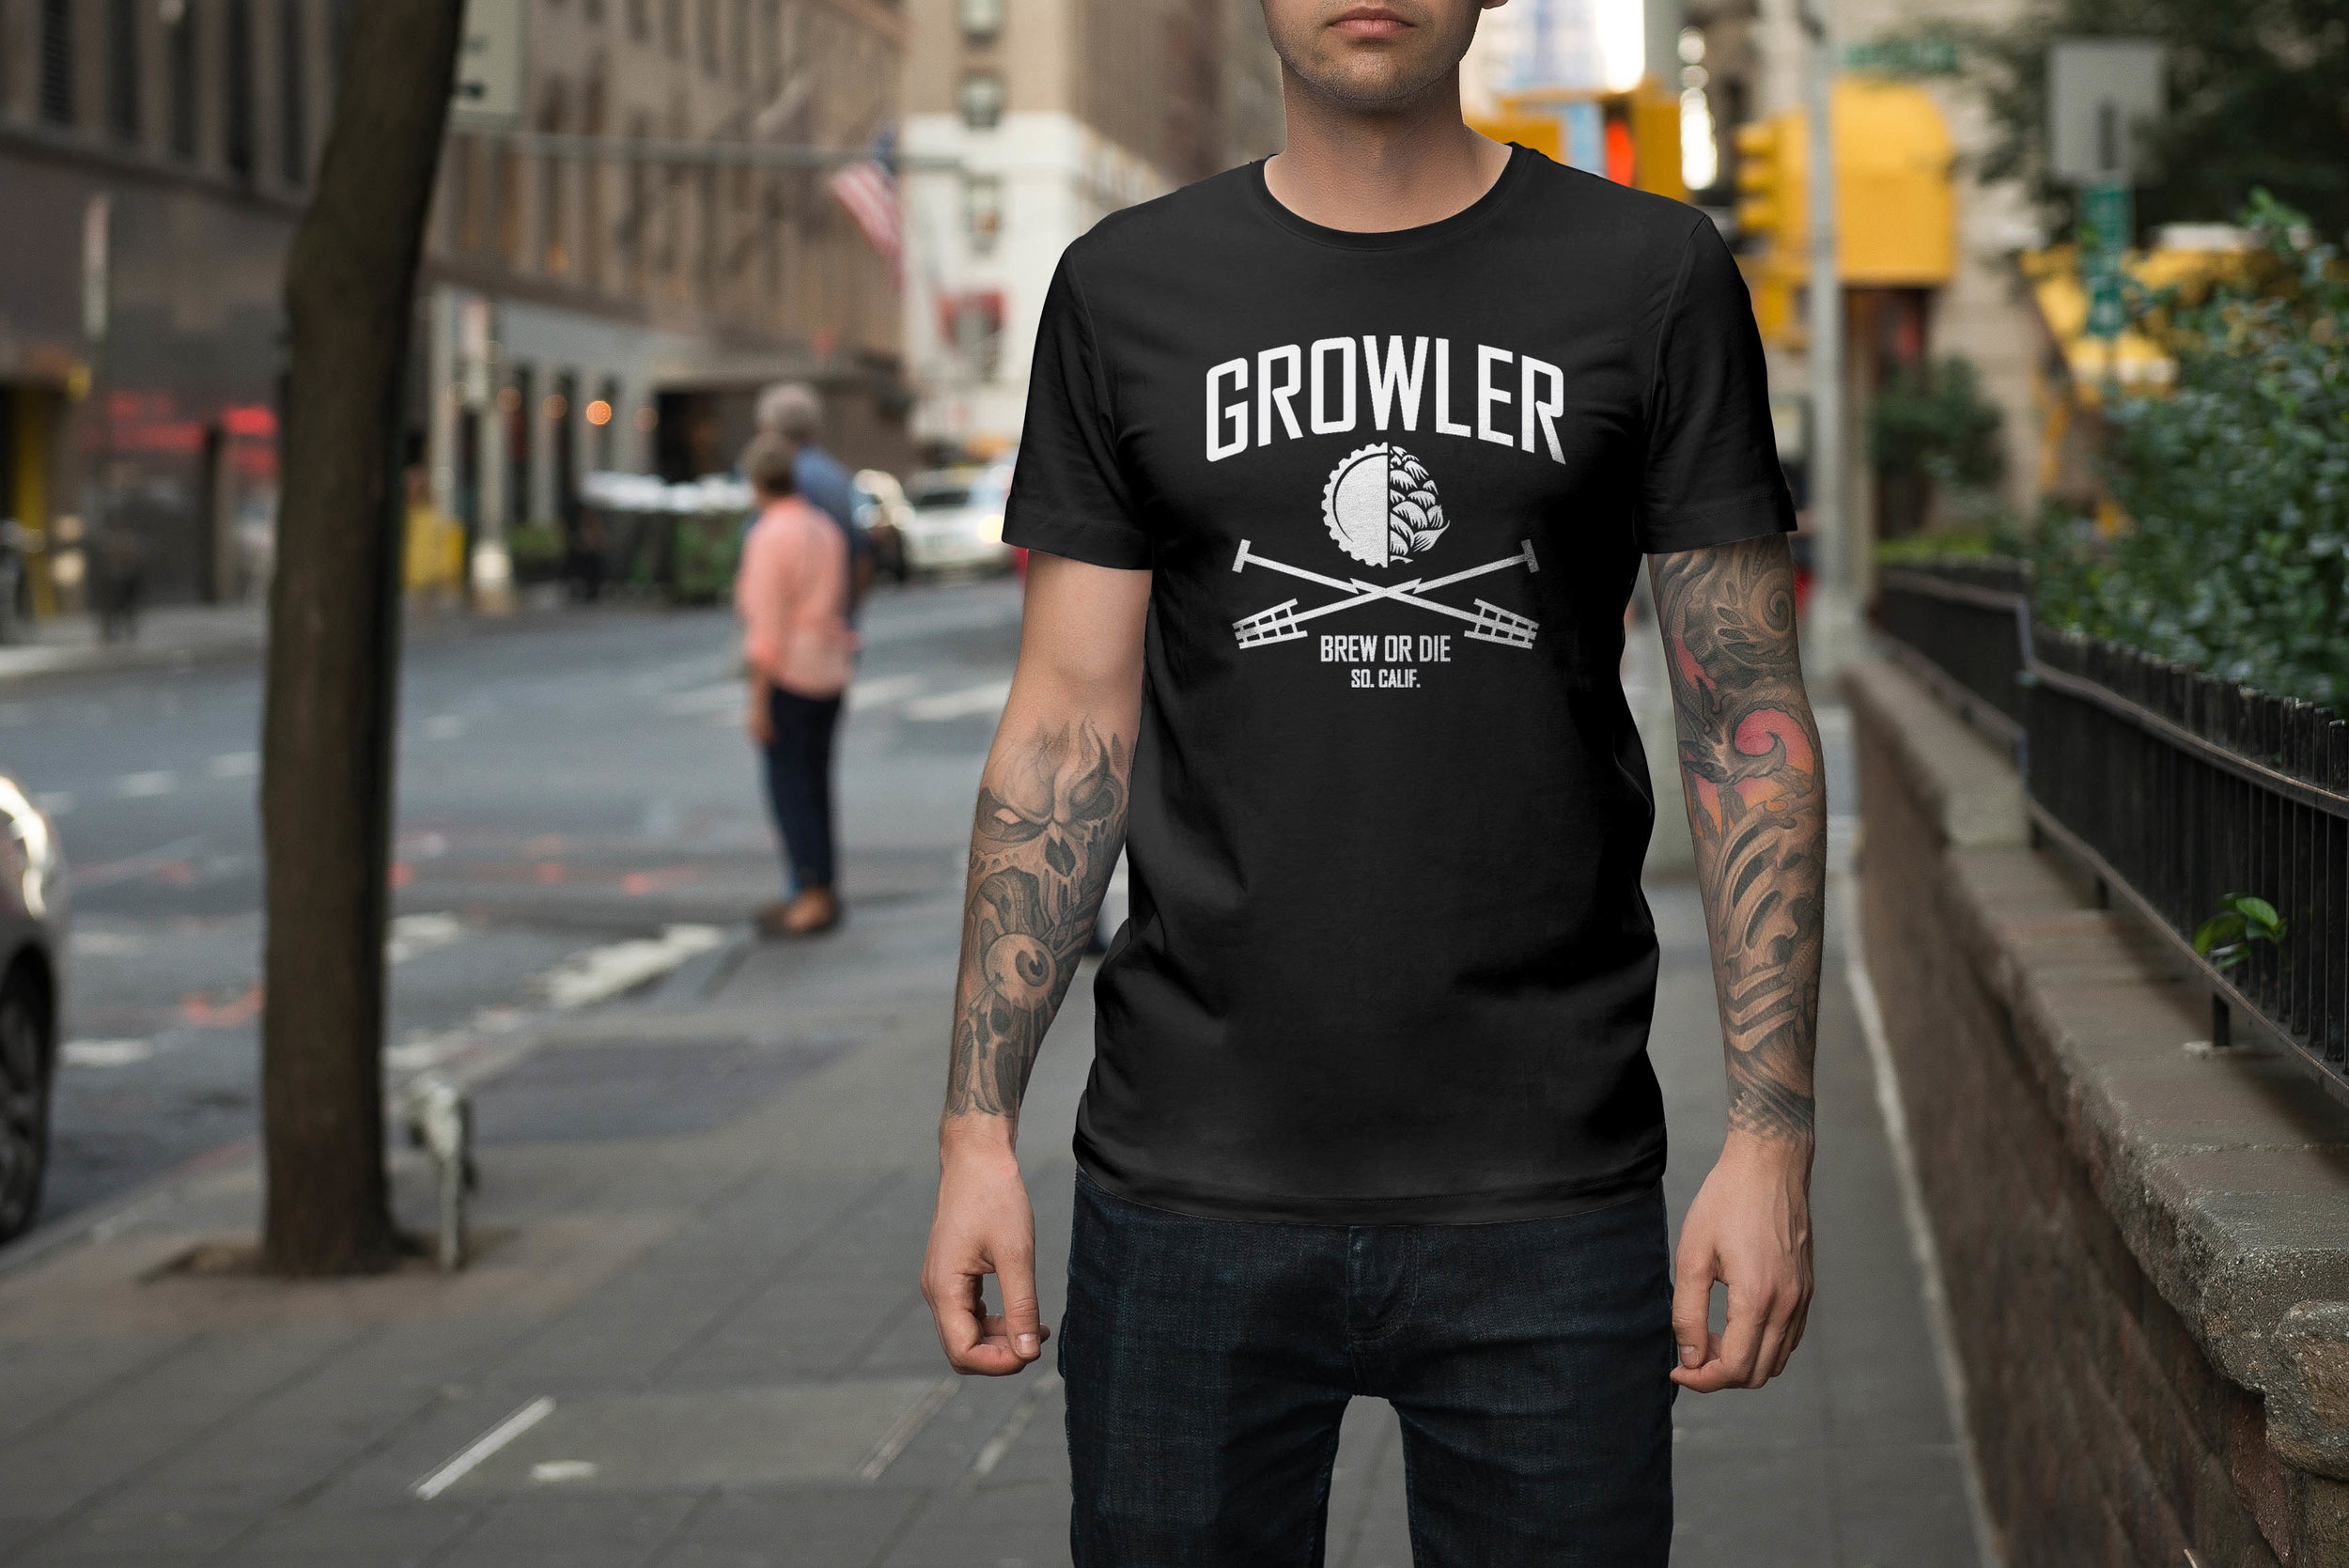 blk friday male-tshirt-mockup.jpg